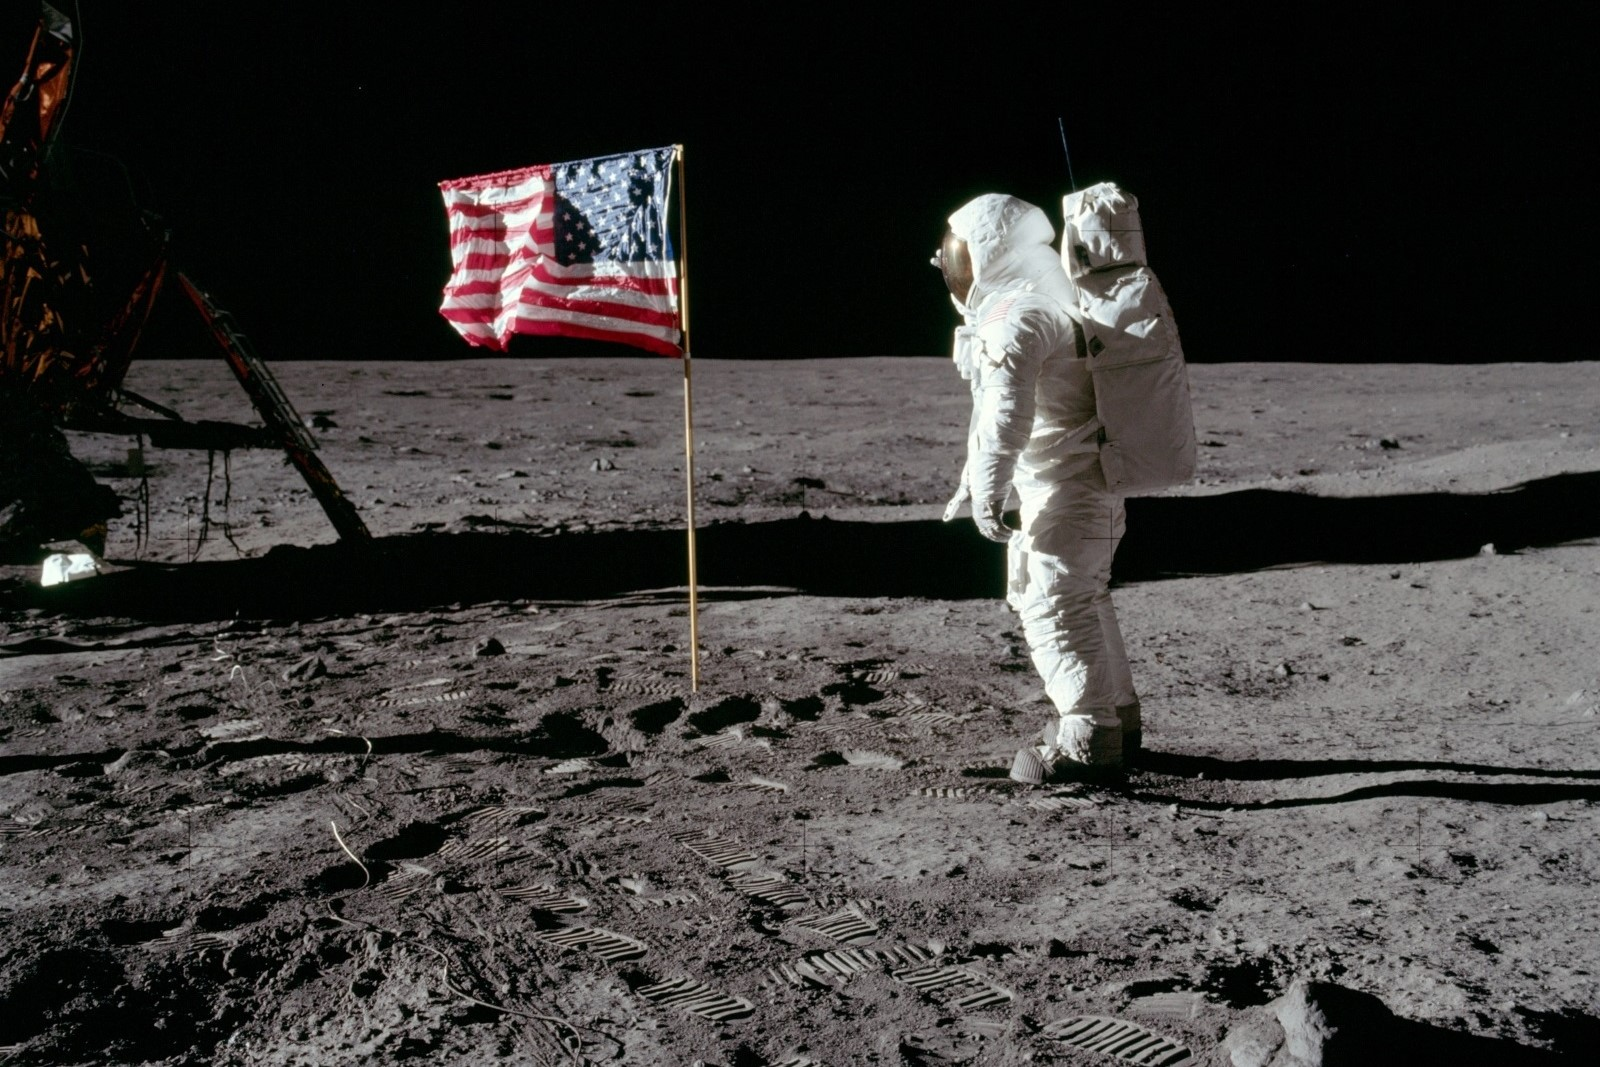 Apollo 11: Buzz Aldrin salutes U.S. flag on the Moon. Photo Credit: NASA